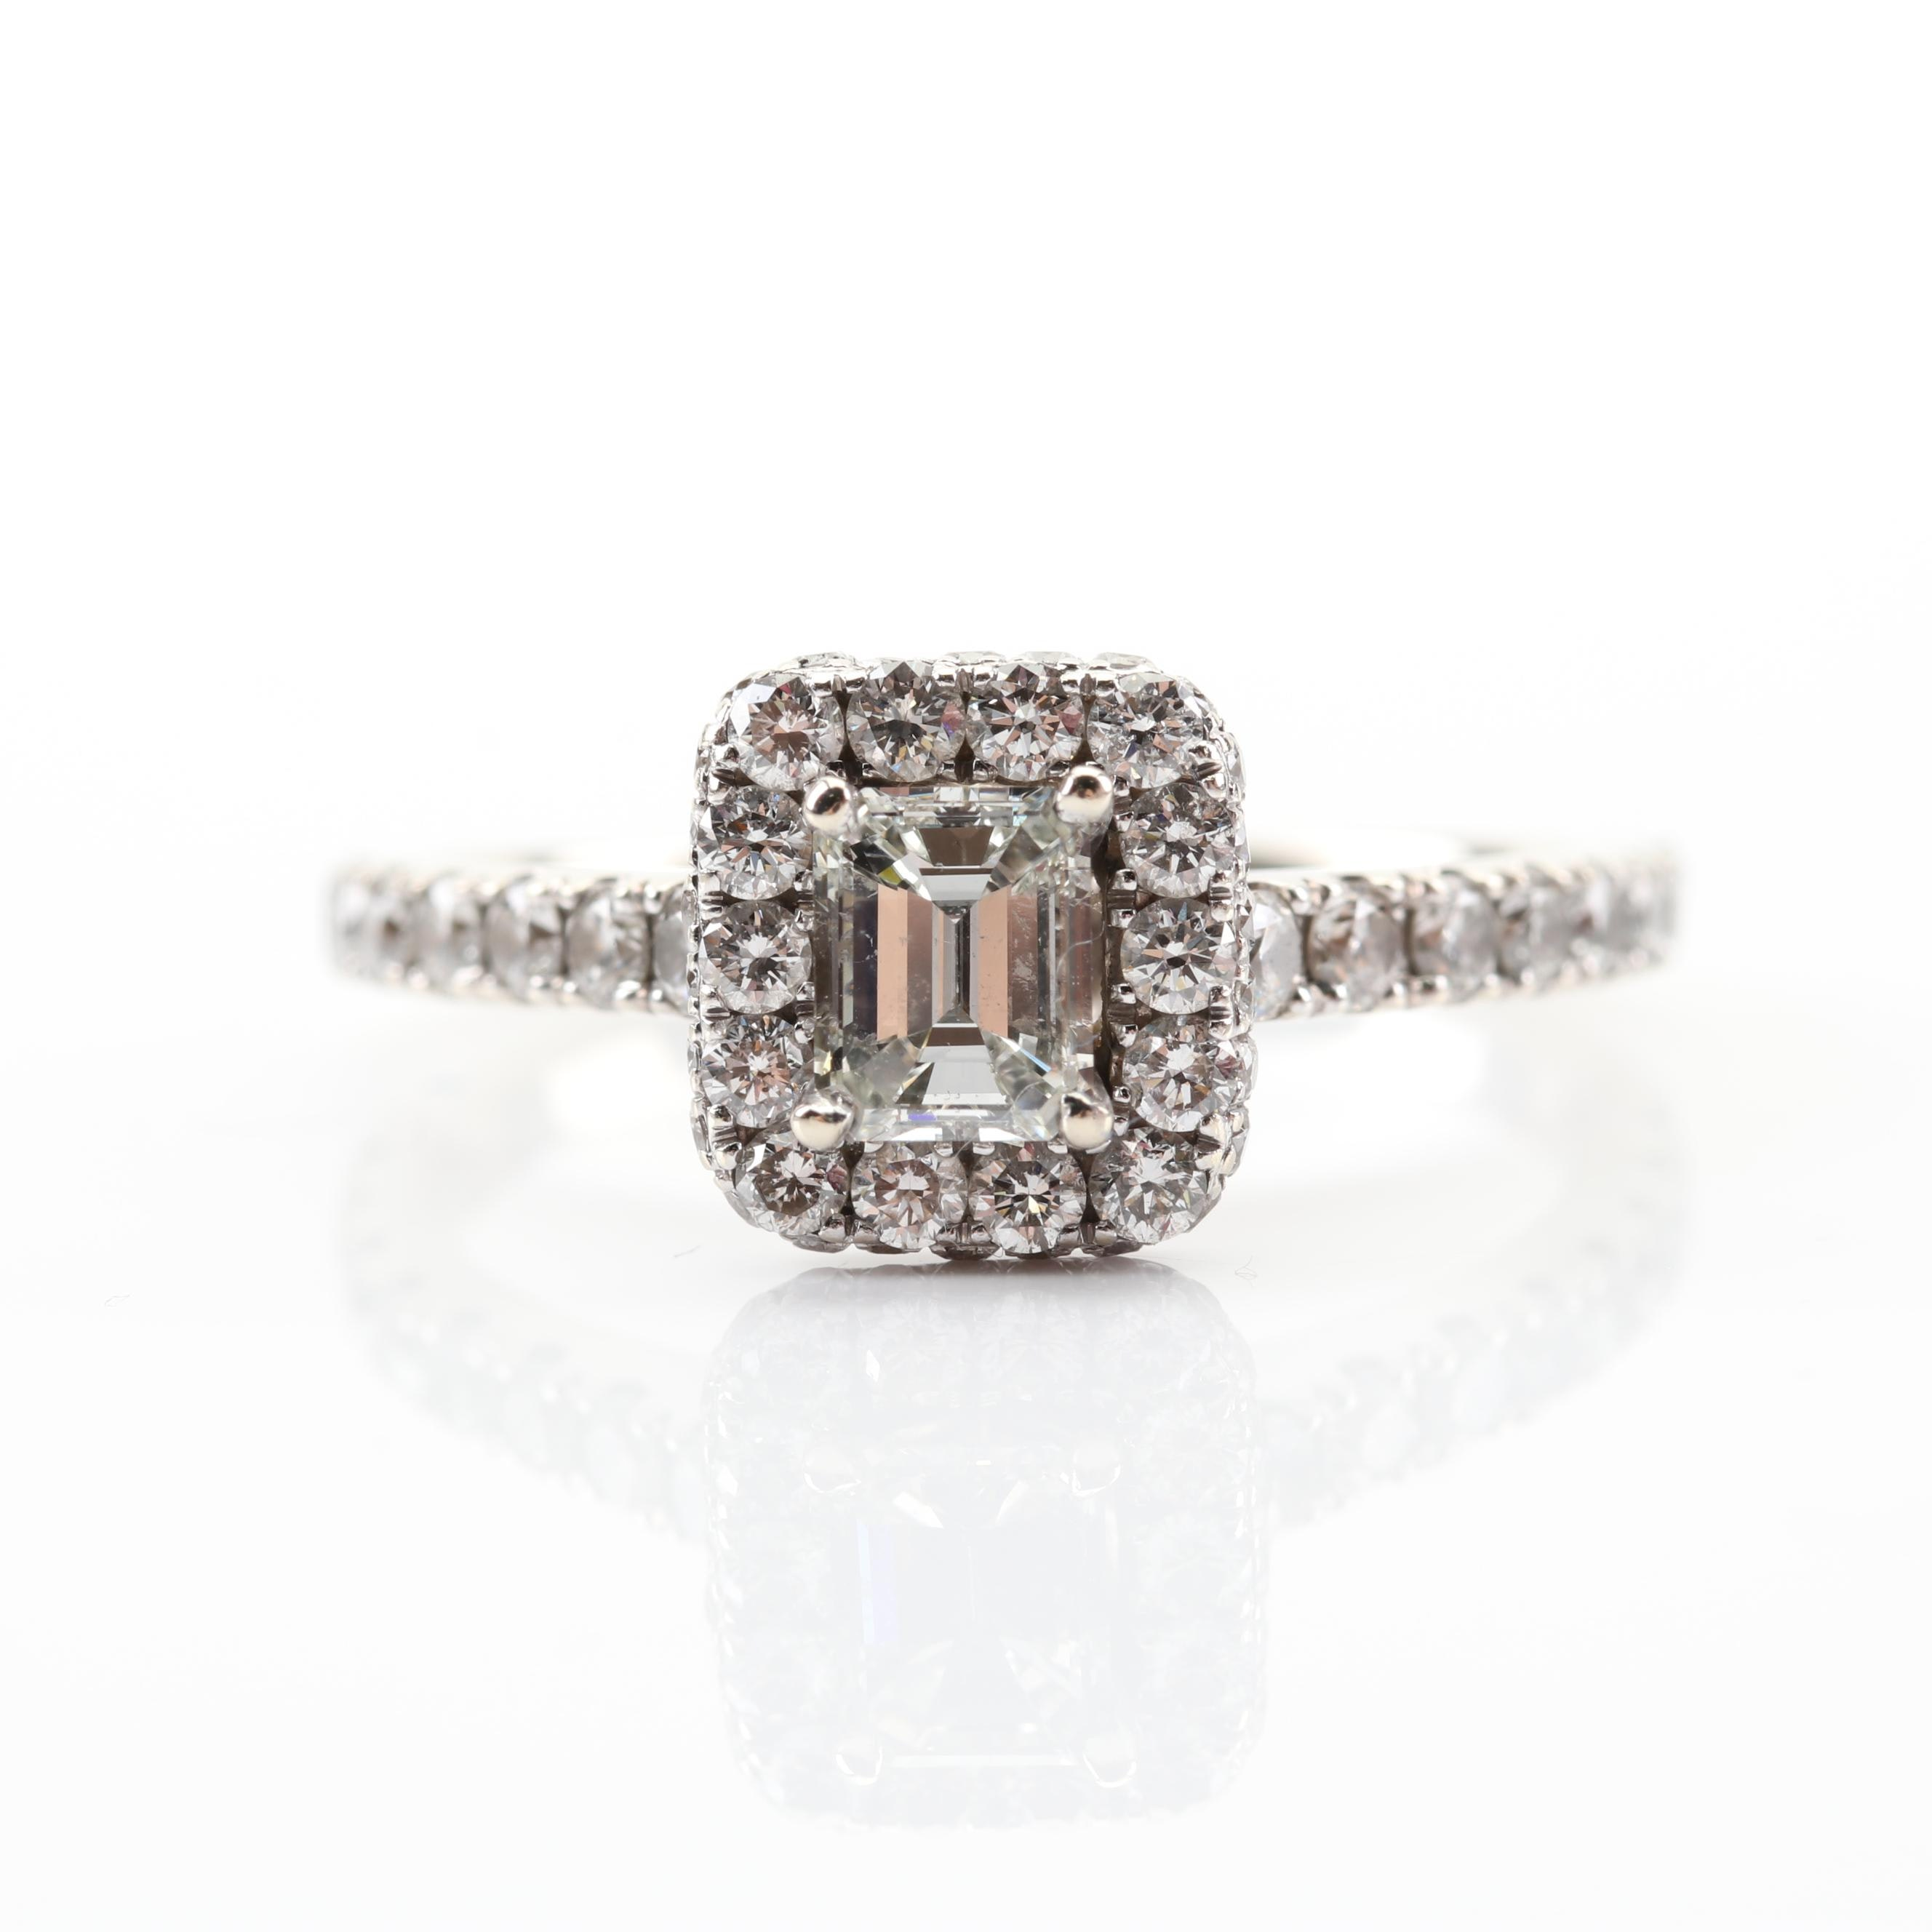 Neil Lane 14K White Gold Emerald Cut Halo Diamond Ring